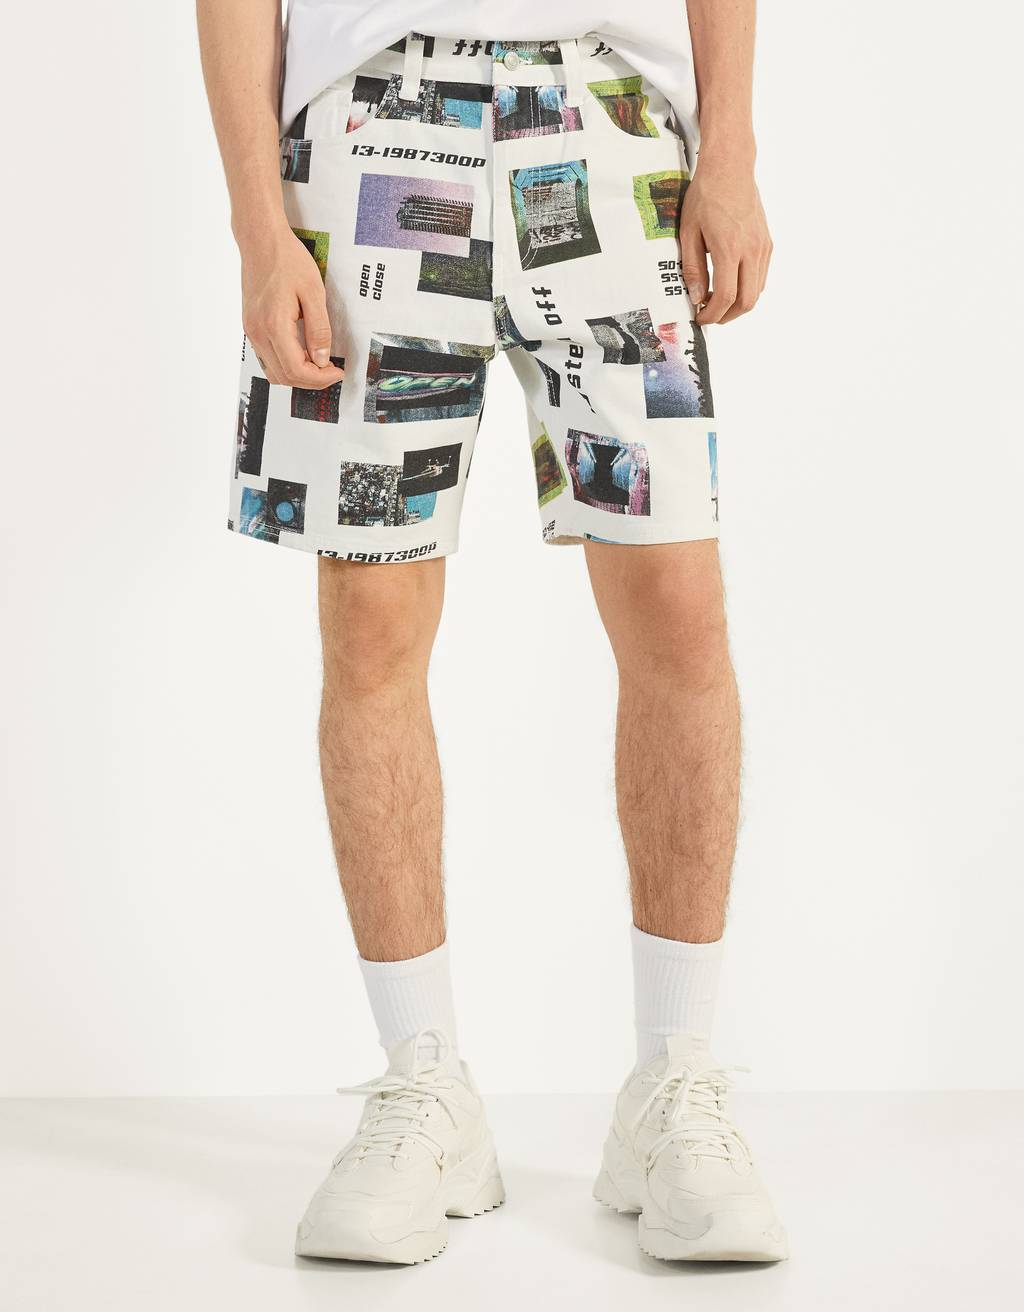 Bermuda shorts with a photographic print